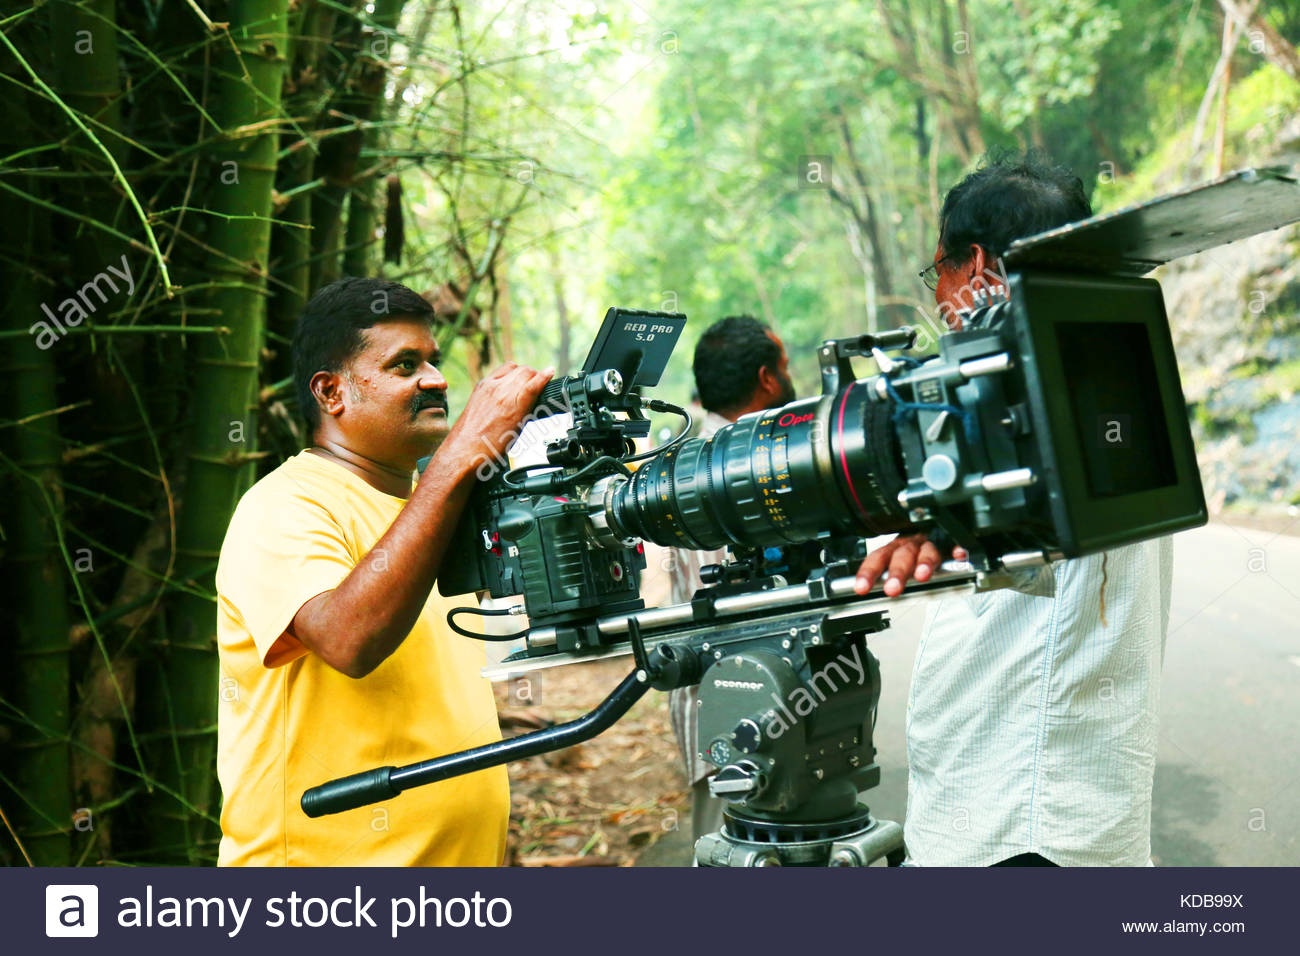 Video camera operator on nature background film shooting spot 1300x956